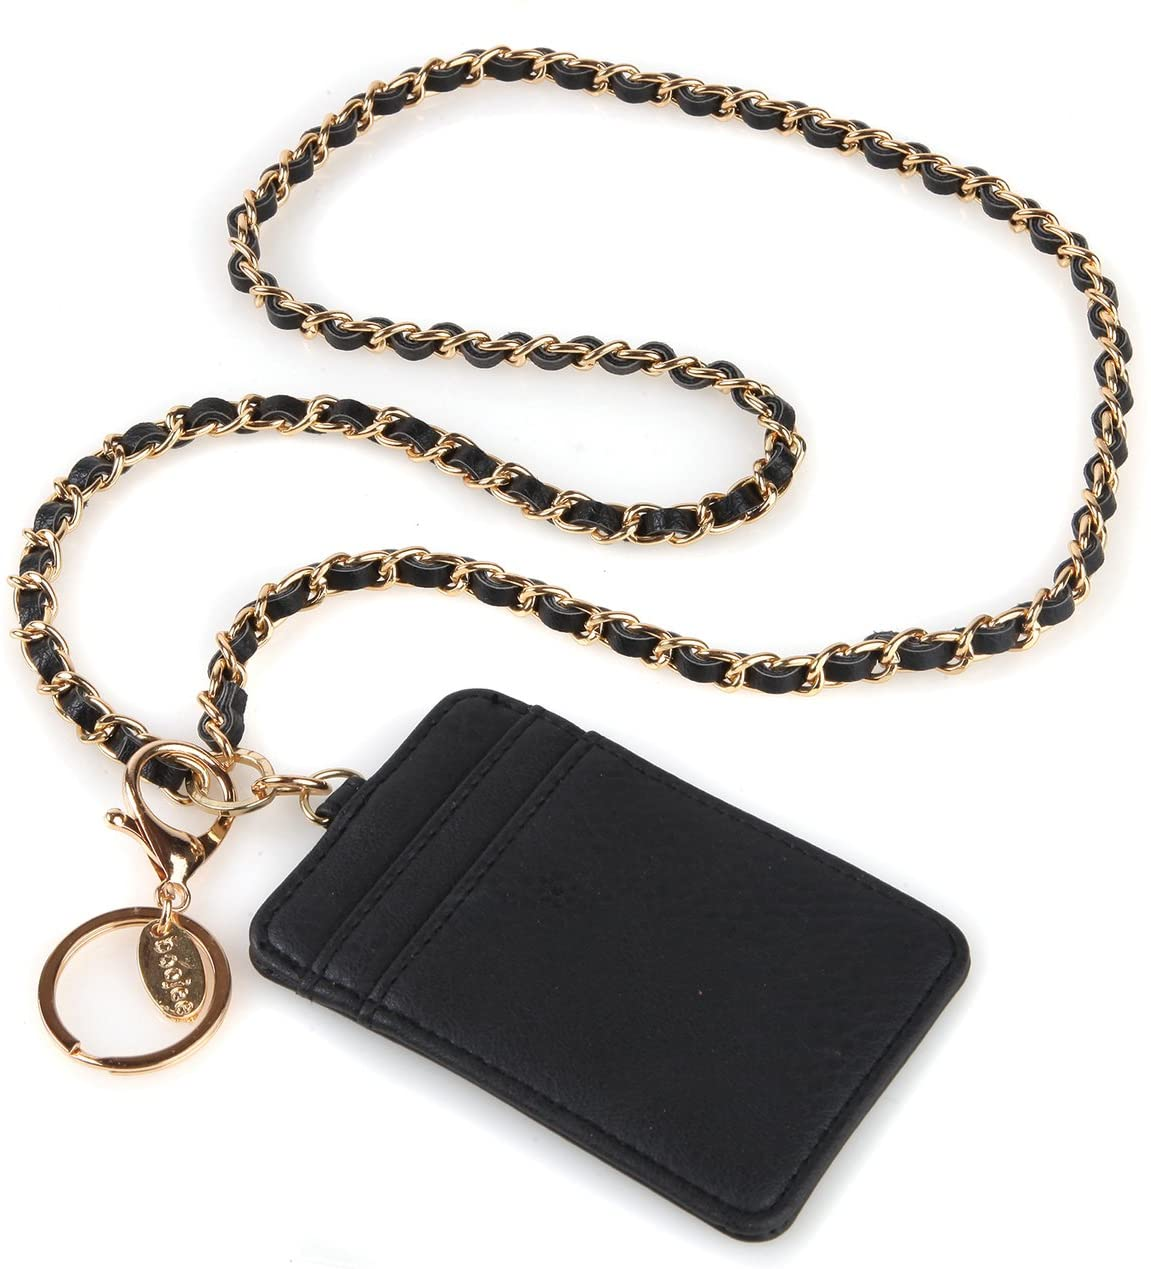 Coco Chain ID Badge Holder Wallet Lanyard in Black